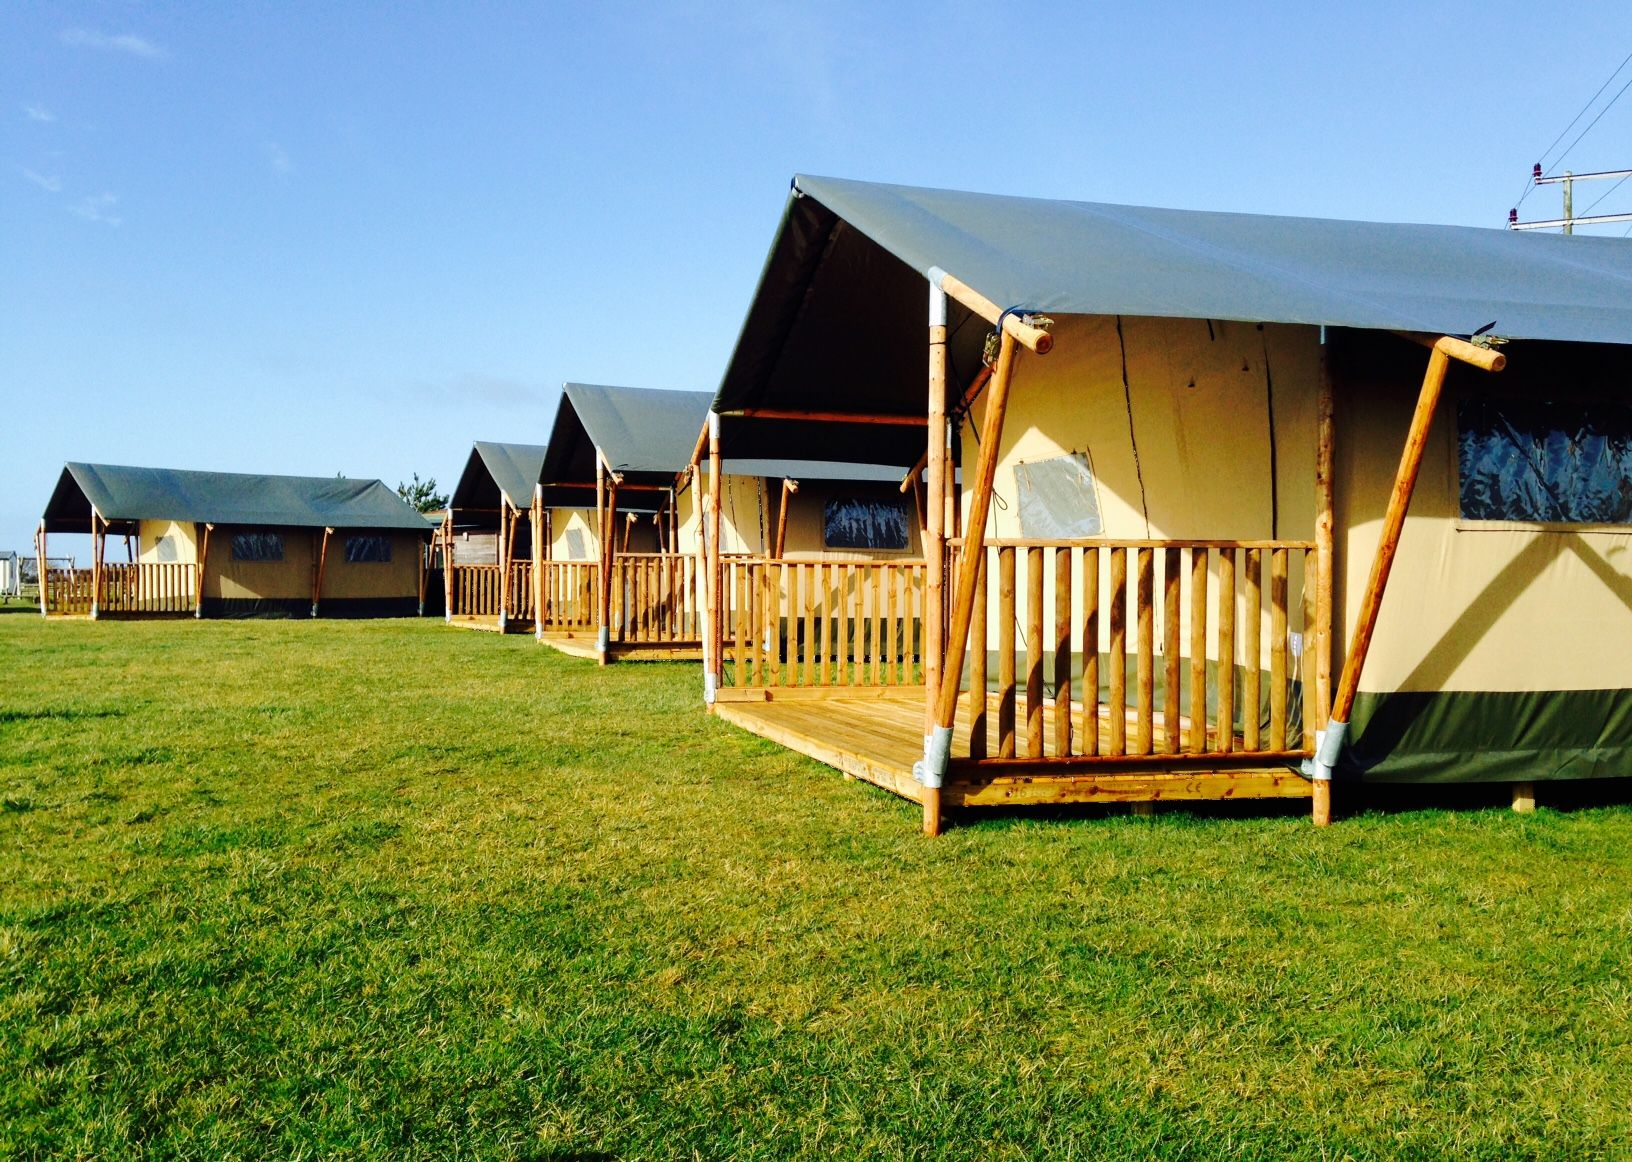 Safari Tents at Littlesea Weymouth & Check out our shiny new Safari Tents at Littlesea! http://bit.ly ...